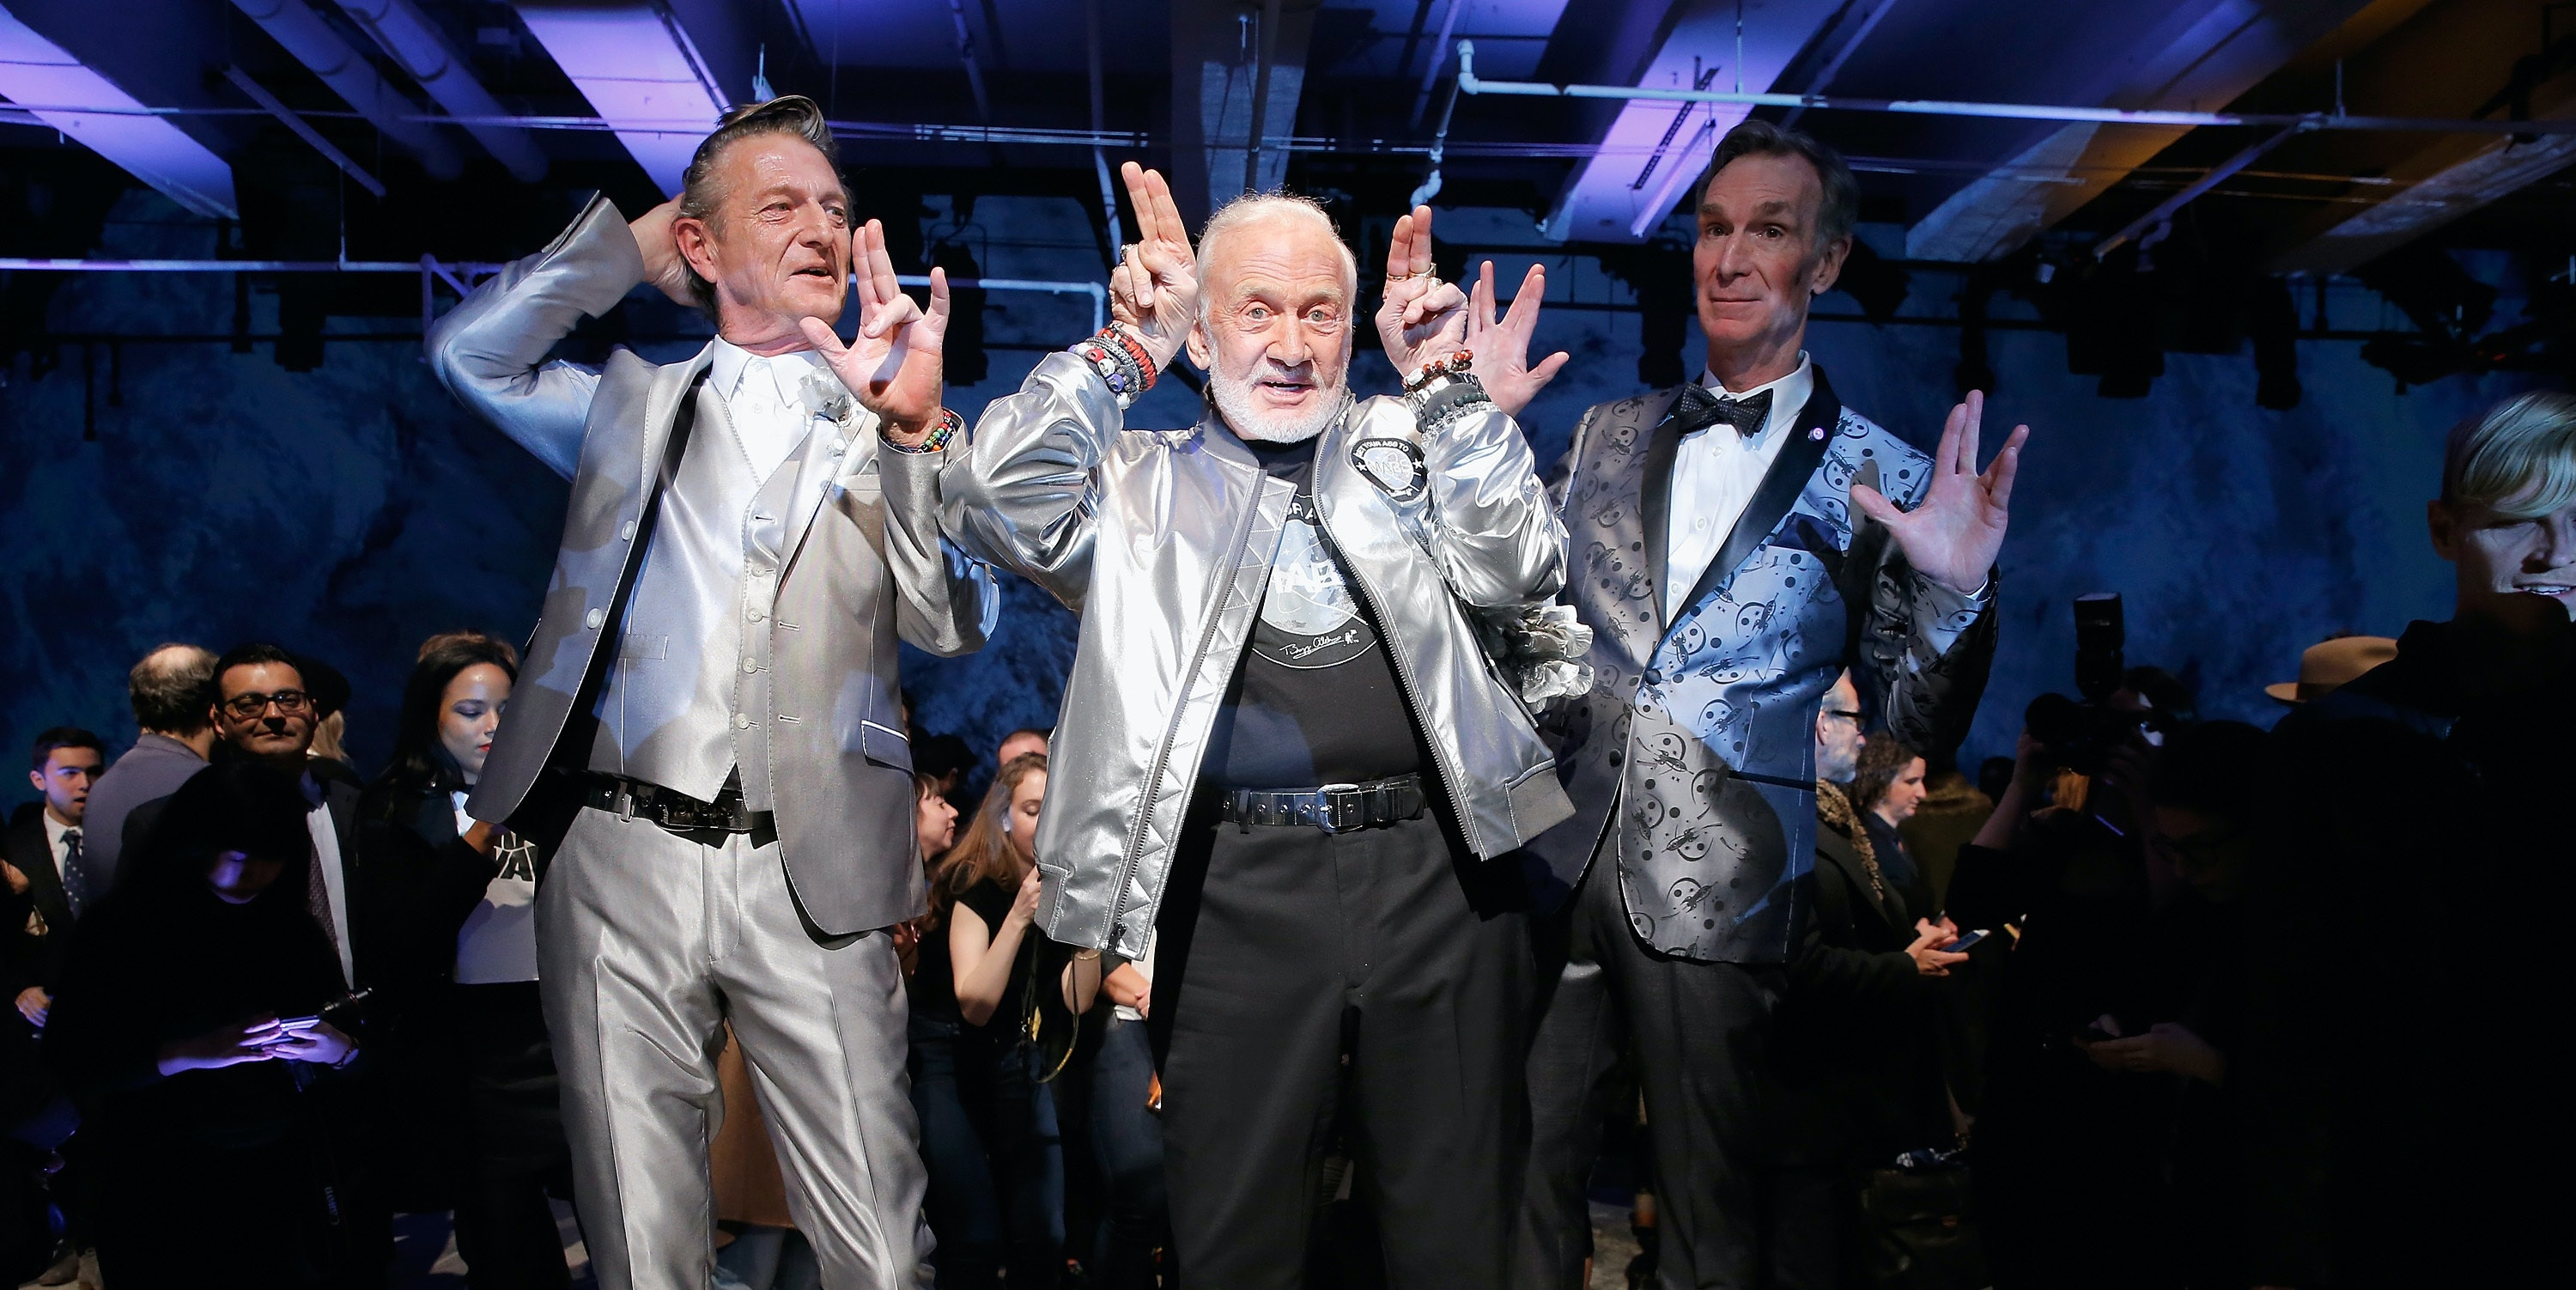 Space goes high fashion at New York Men's Fashion Week.